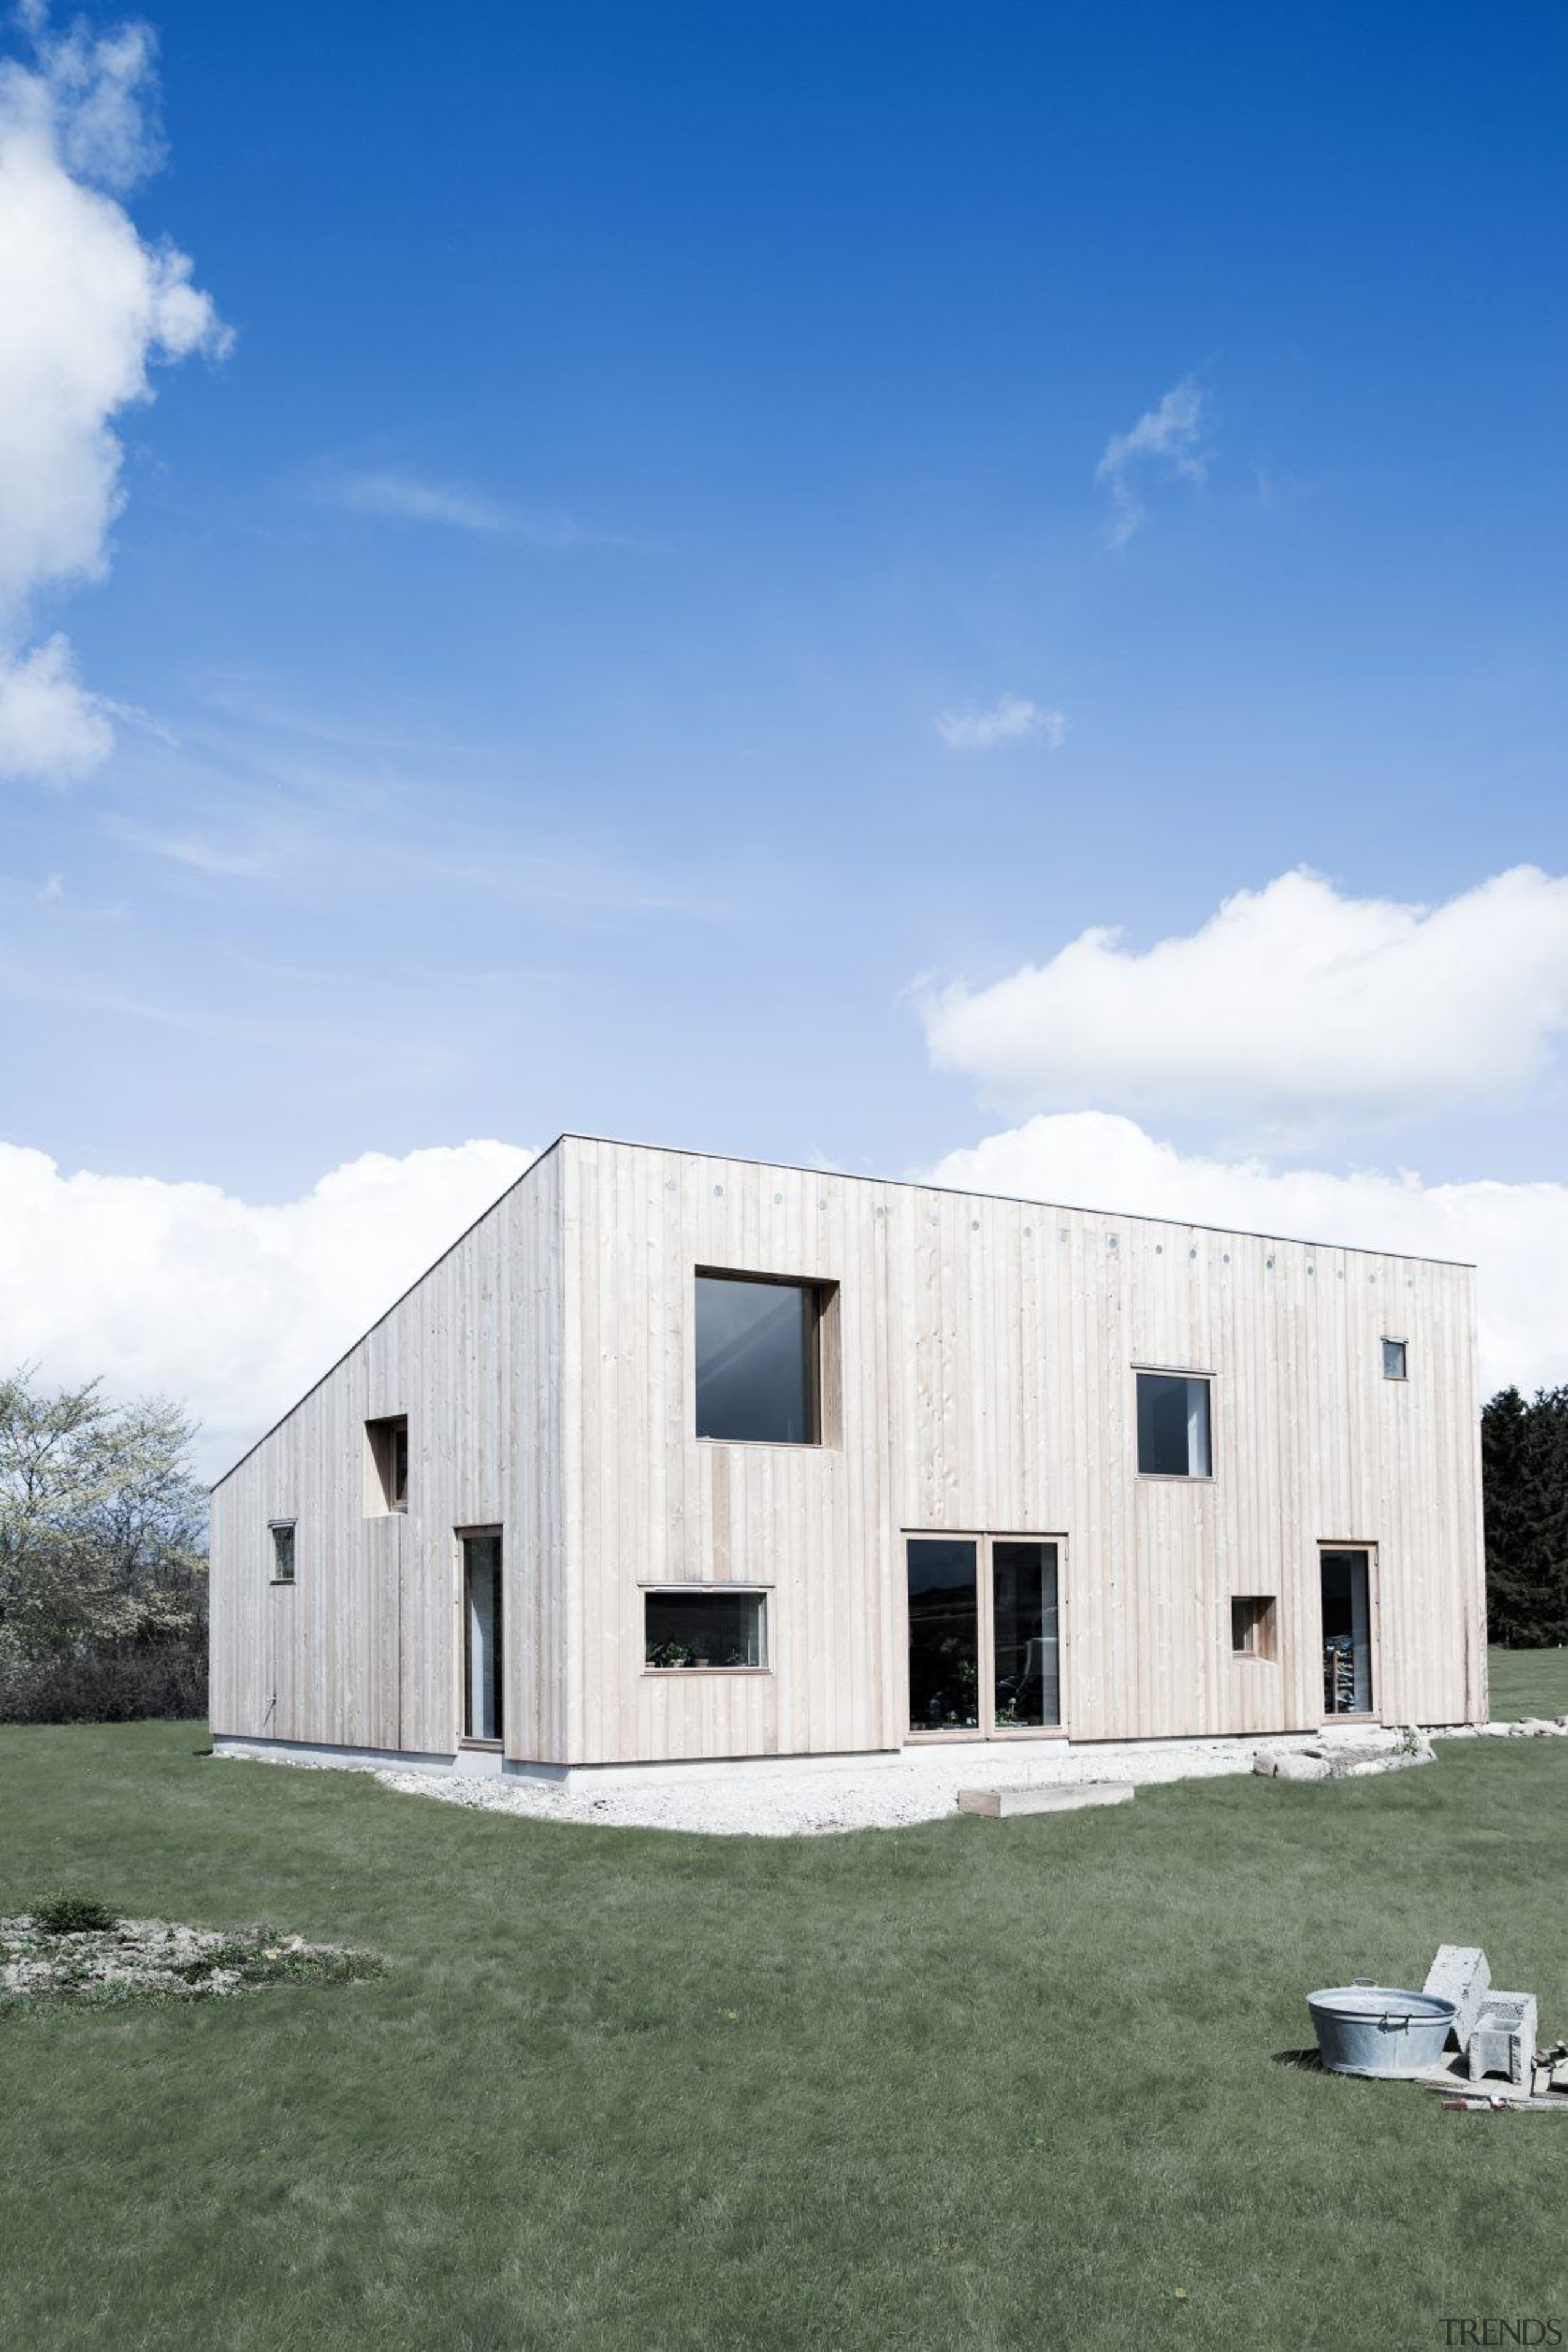 Architect: Sigured Larsen architecture, barn, facade, home, house, real estate, sky, white, teal